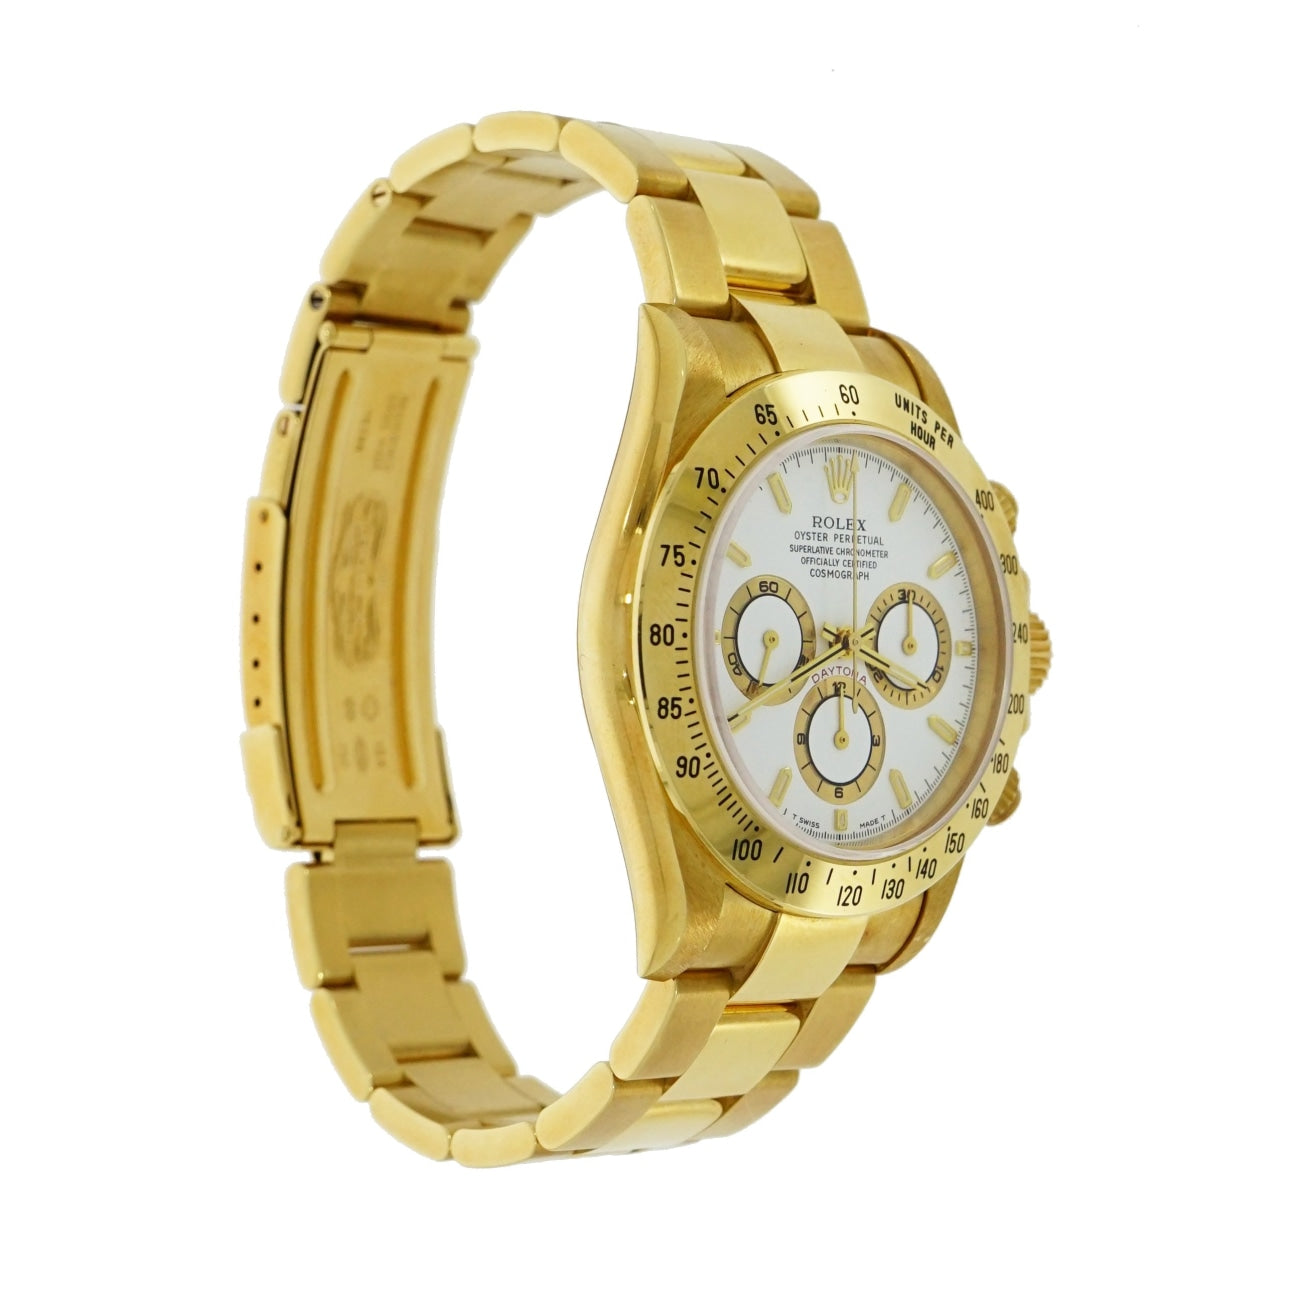 Pre-Owned Rolex Watches - Oyster Perpetual Cosmograph Daytona in 18 Karat Yellow Gold | Manfredi Jewels